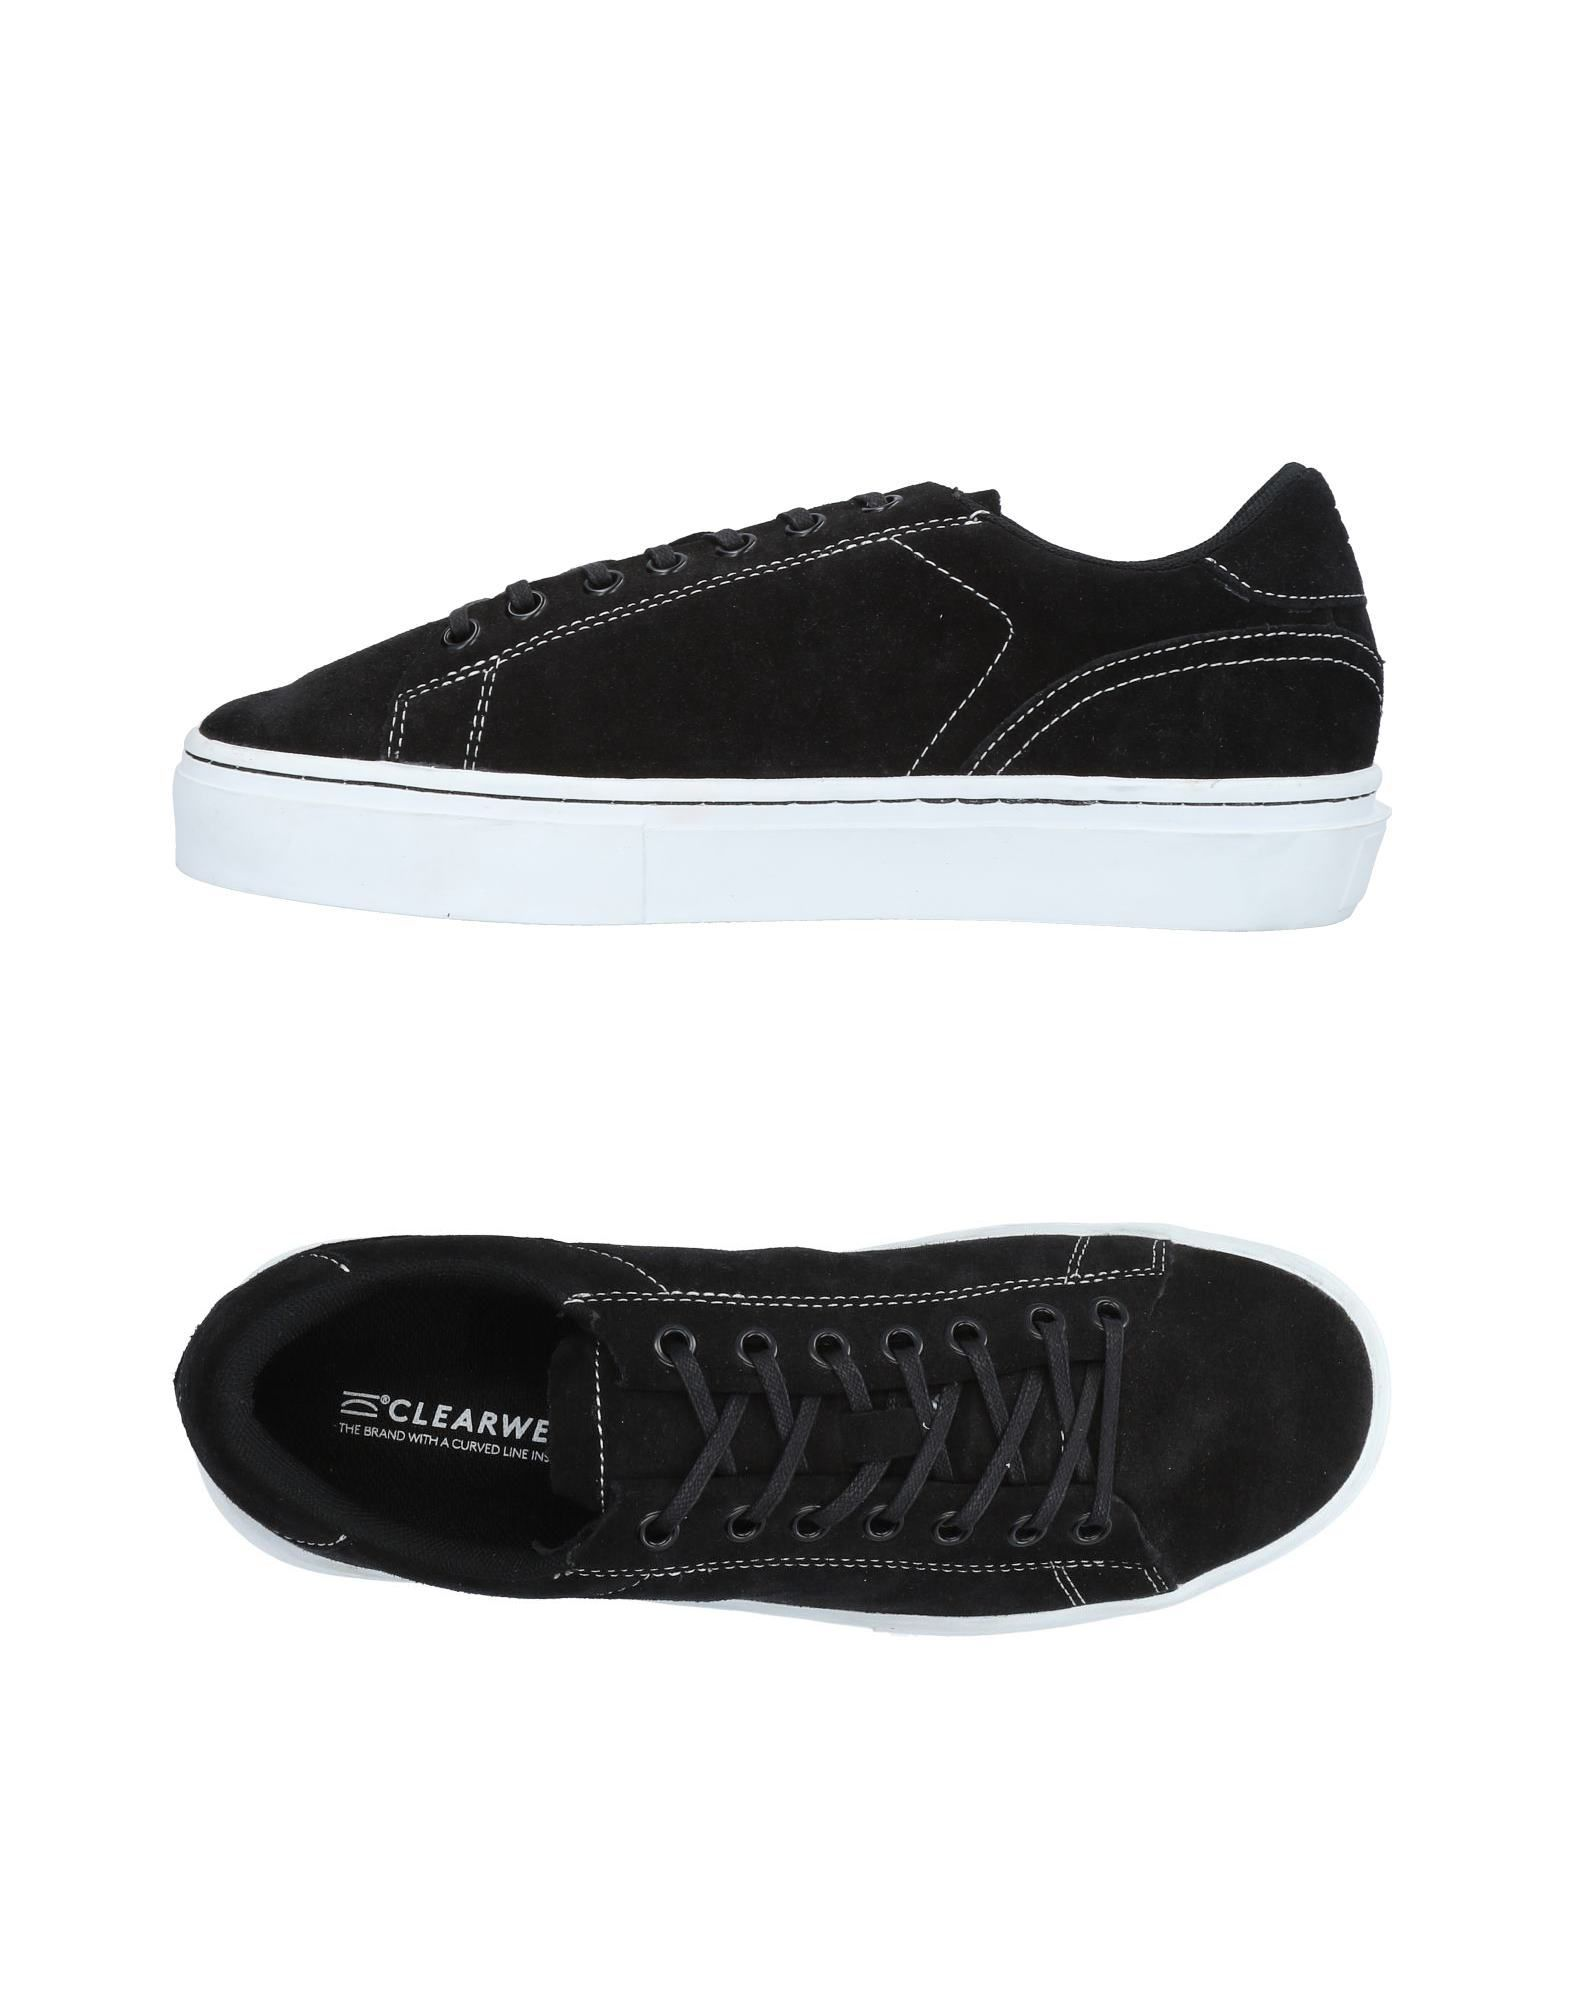 CLEAR WEATHER Sneakers in Black